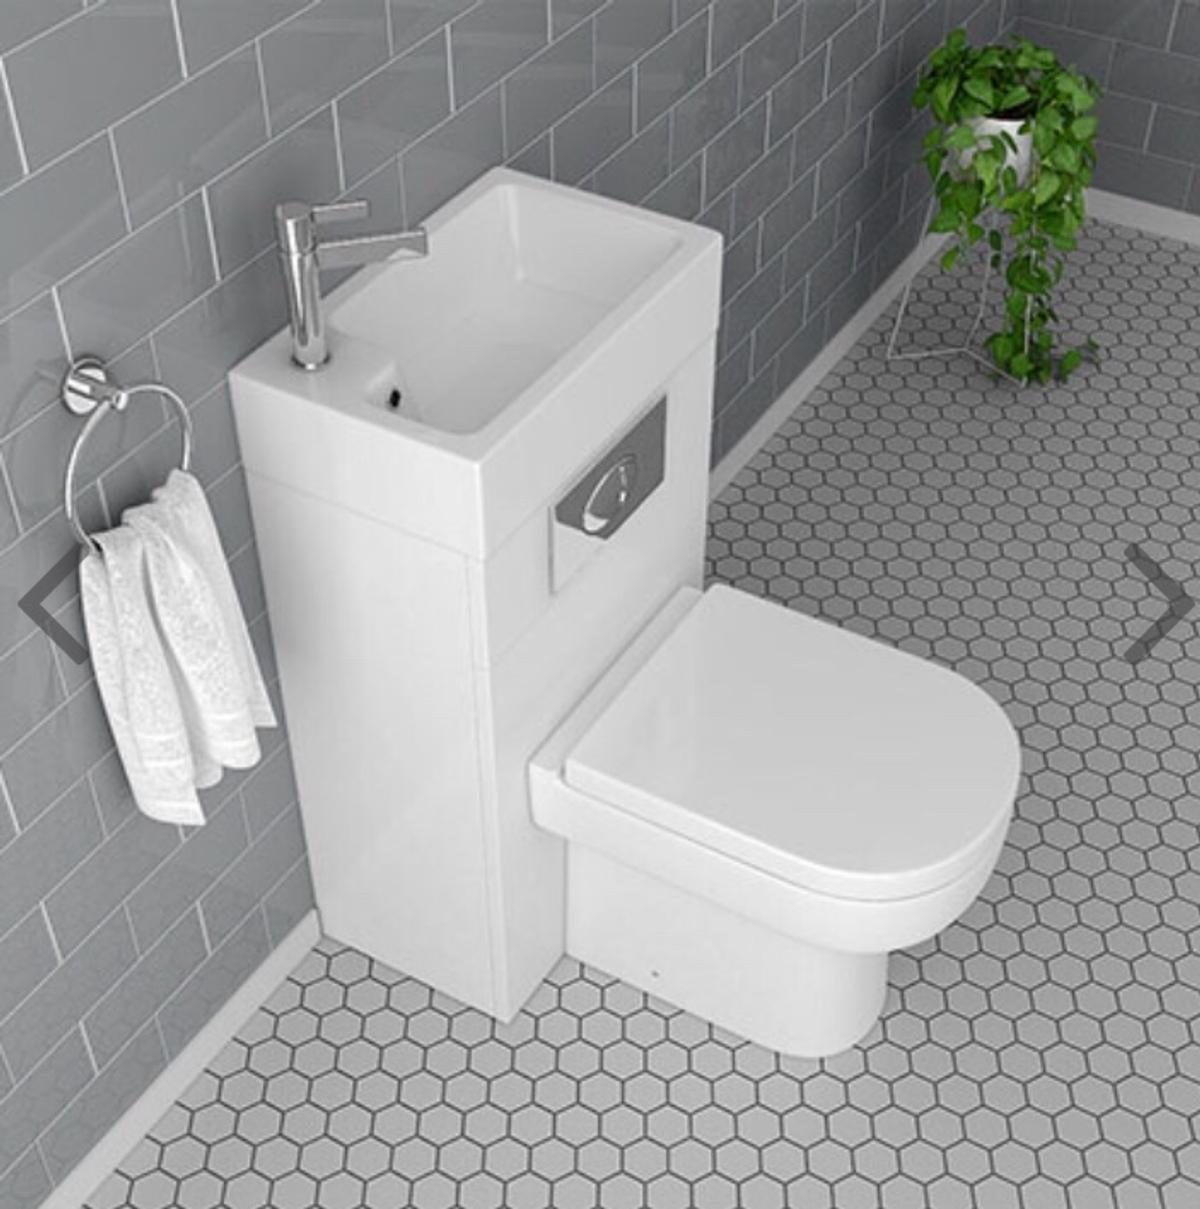 toilet and sink attached